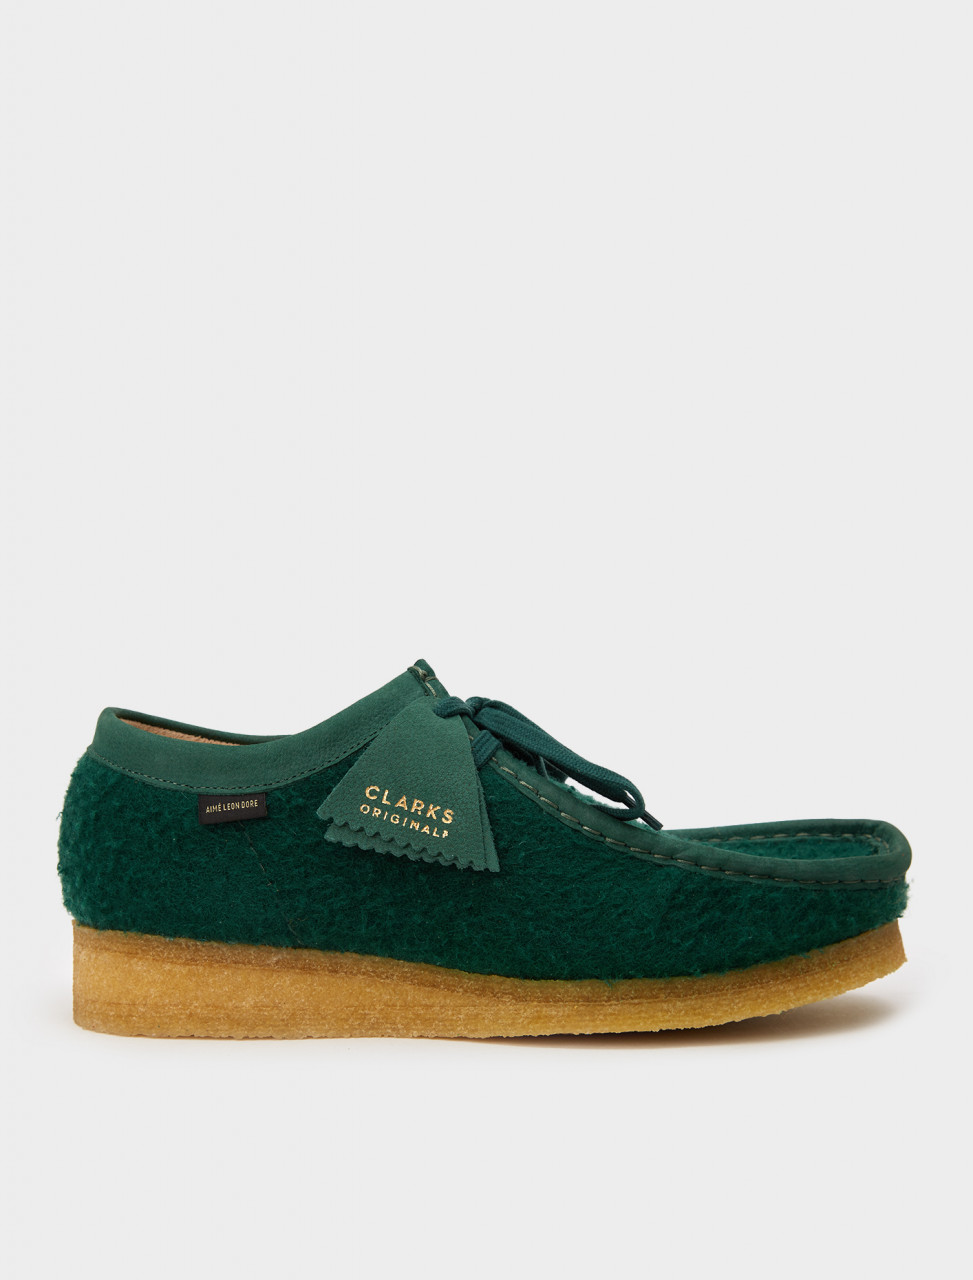 334-26160880 CLARKS AIME LEON DORE WALLABEE DARK GREEN WOOL